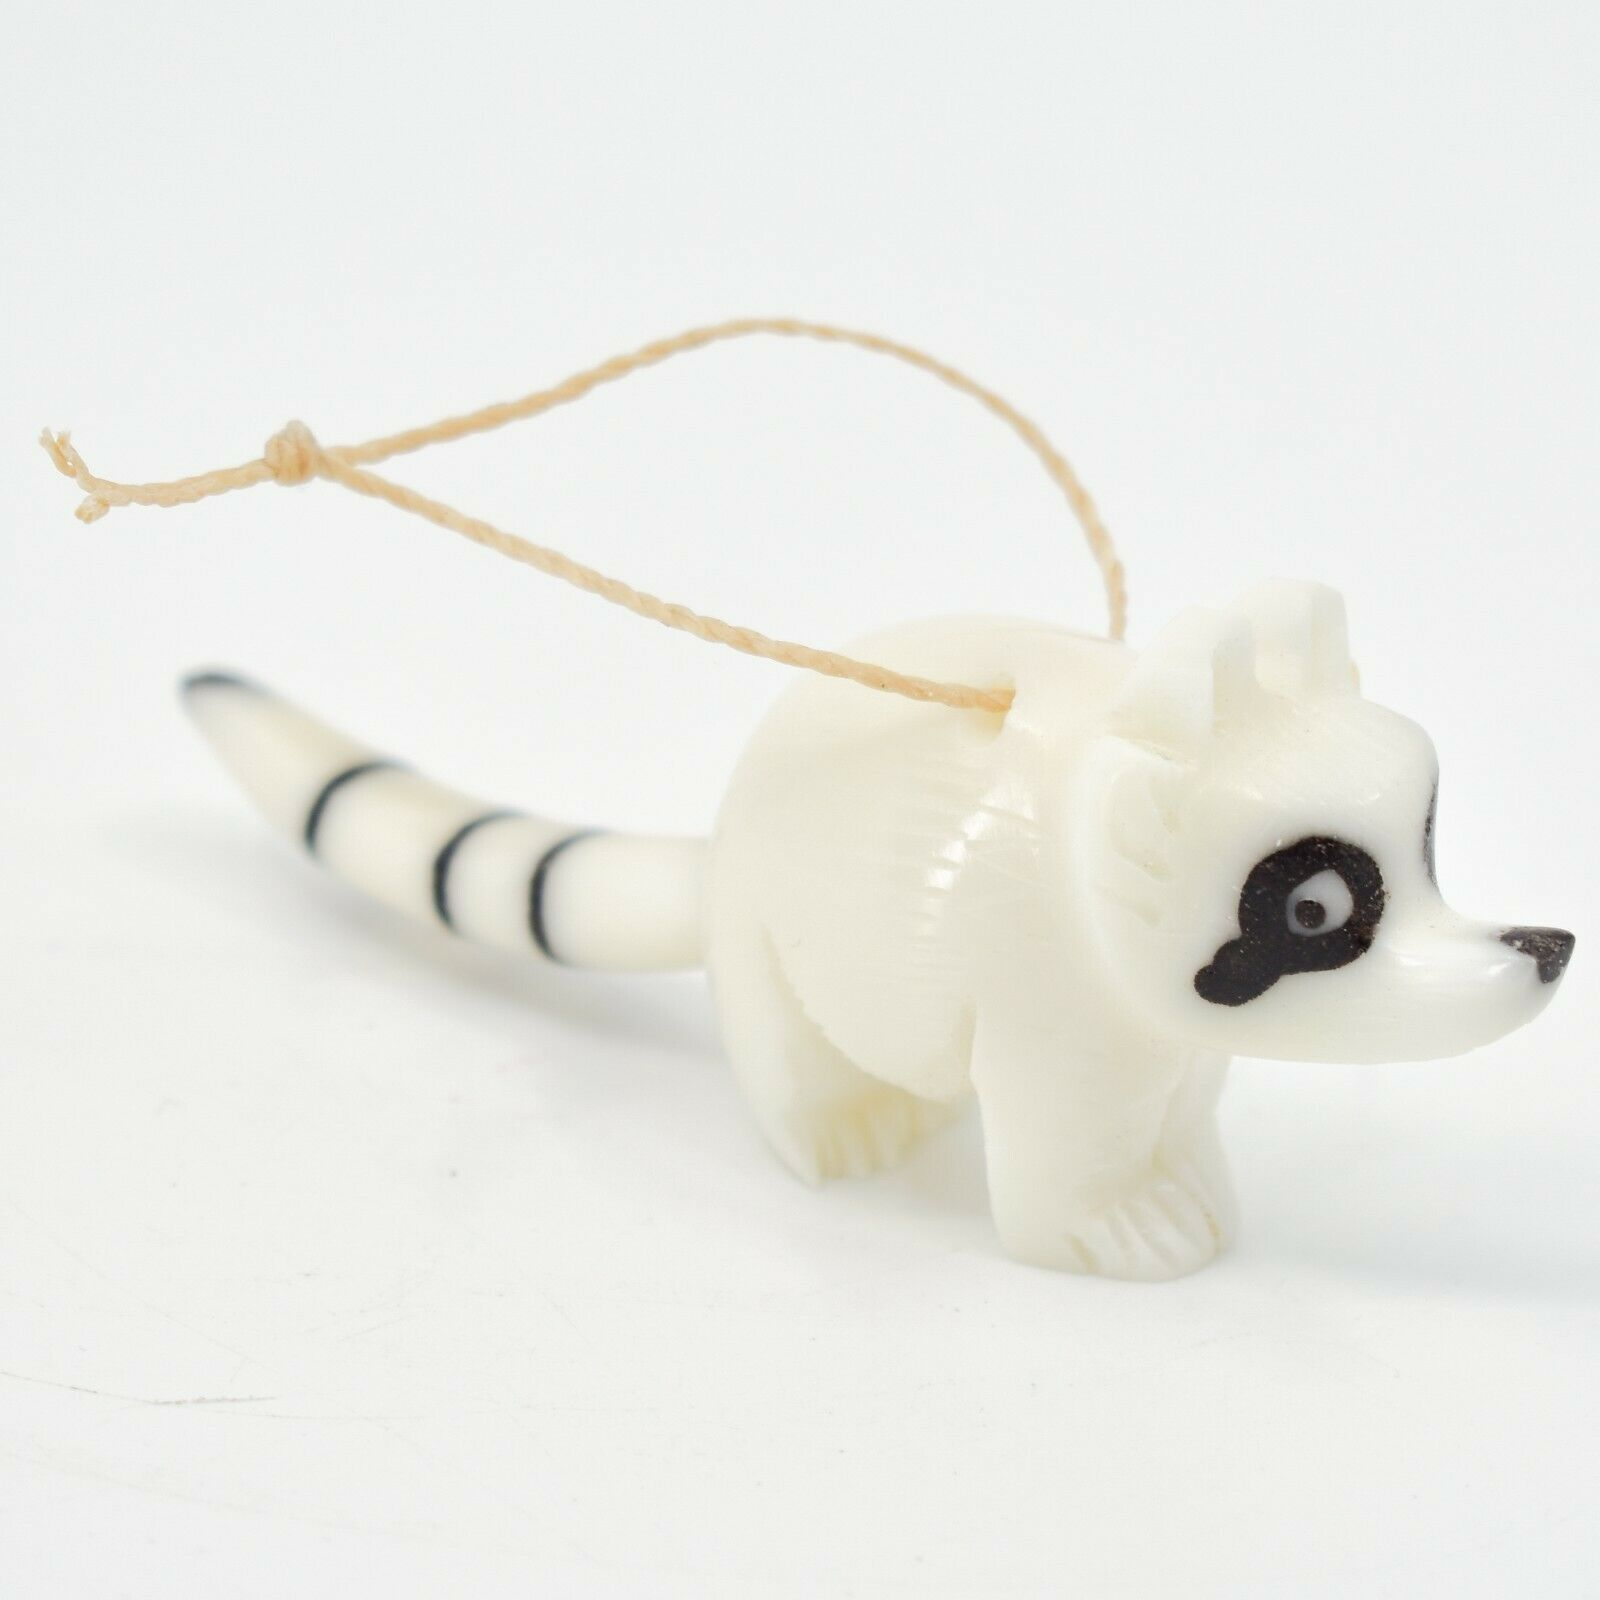 Hand Carved Tagua Nut Carving Raccoon Hanging Ornament Made in Ecuador